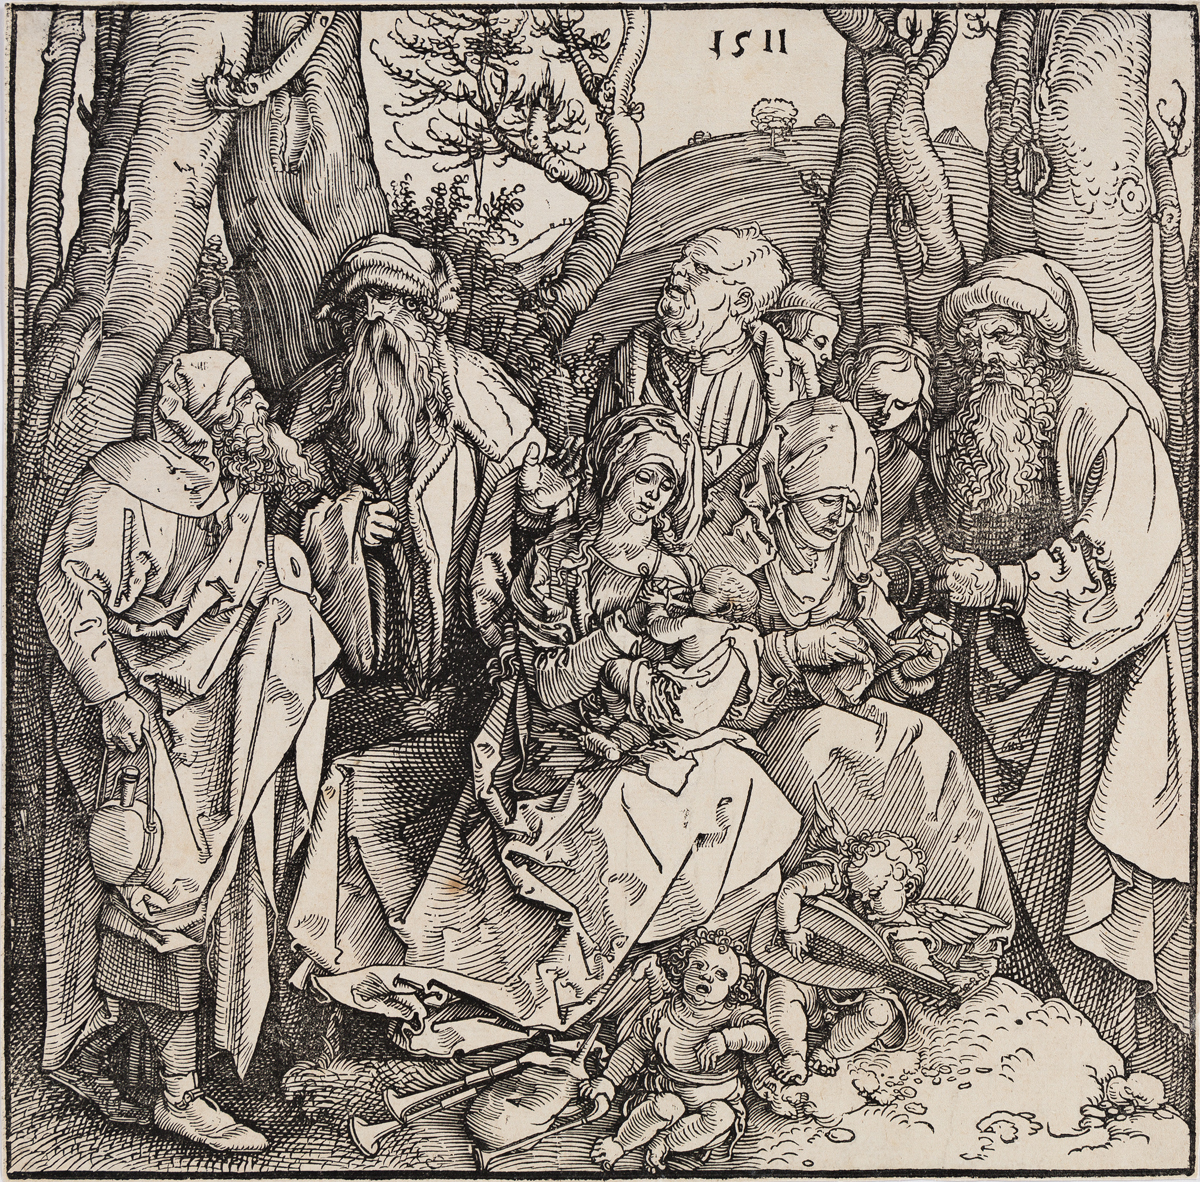 ALBRECHT DÜRER The Holy Kinship with the Lute-Playing Angels.